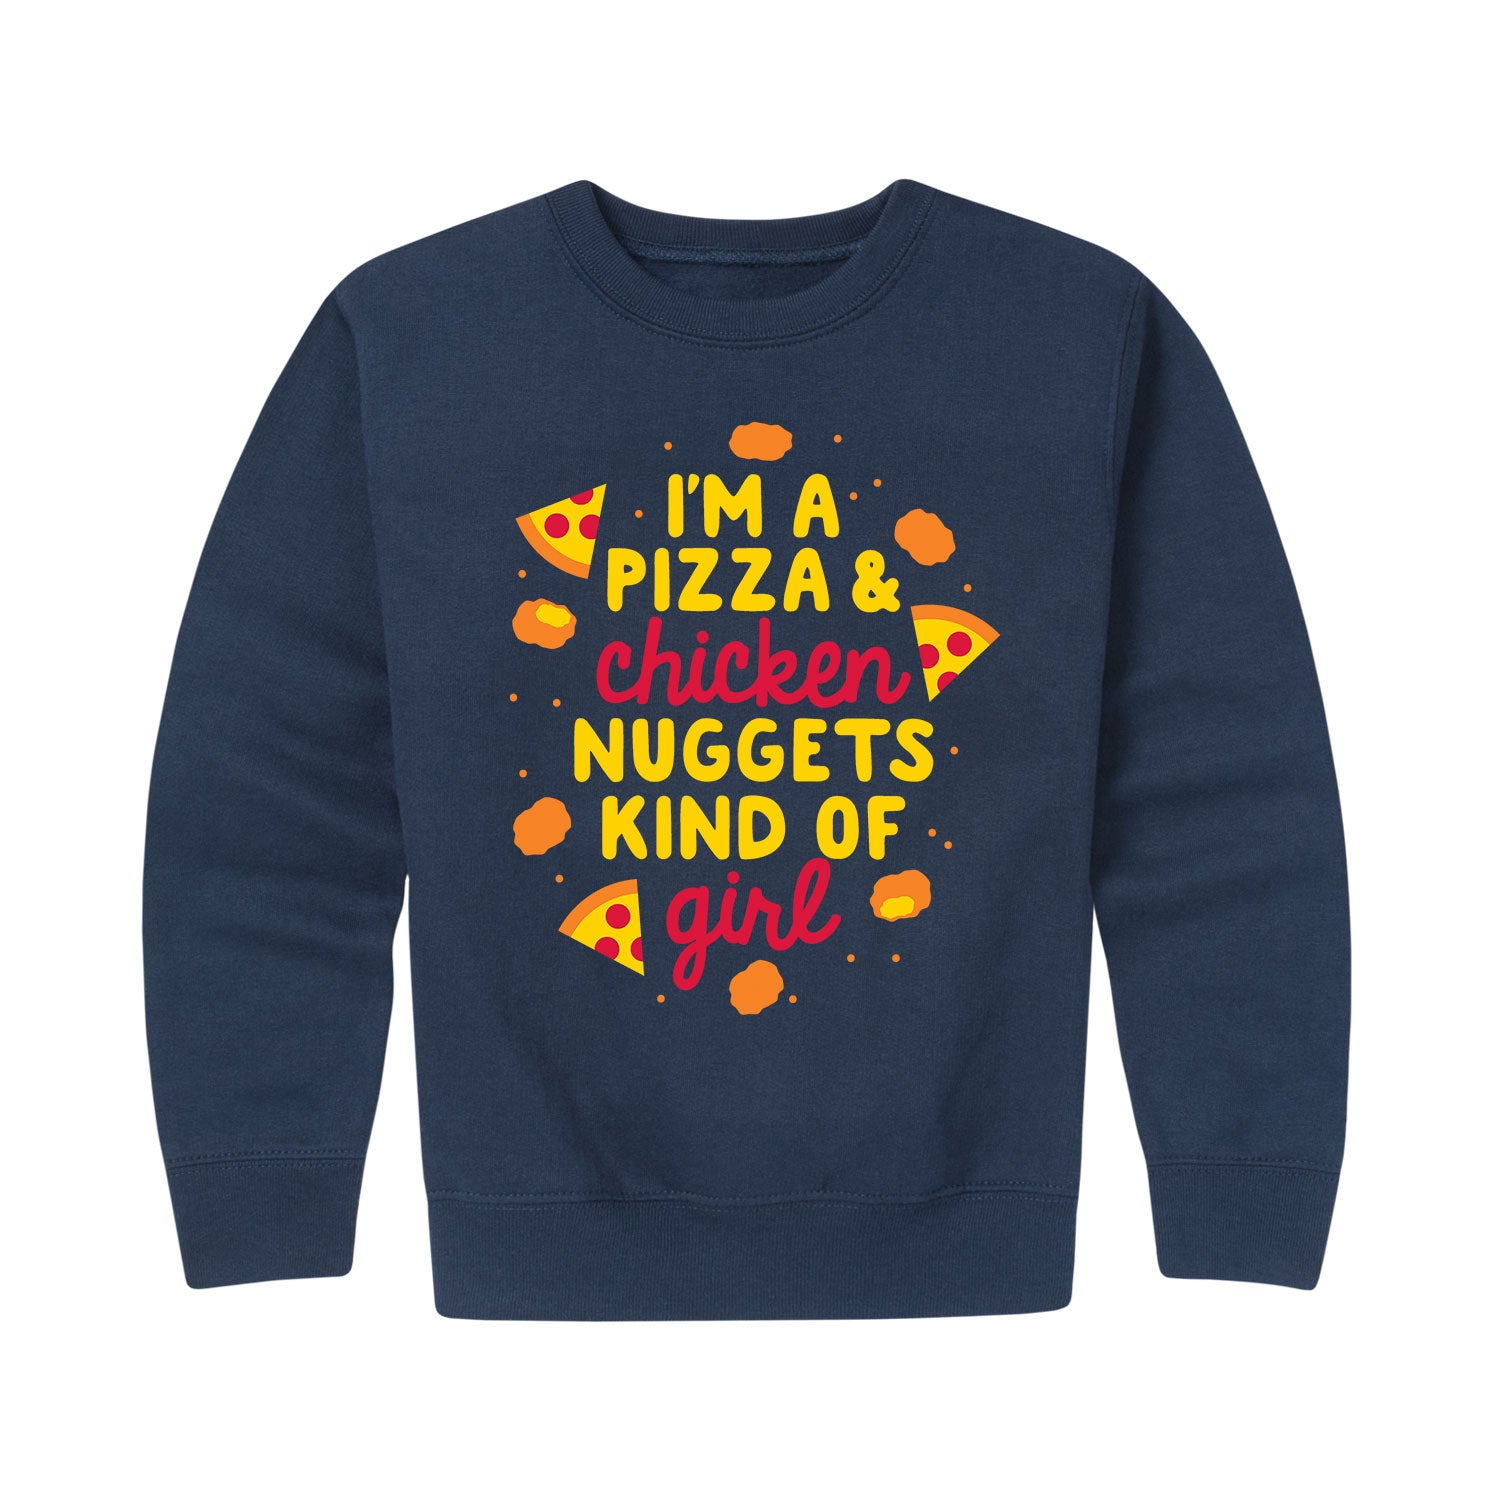 Pizza And Nuggets Girl - Youth & Toddler Girl Crew Neck Fleece